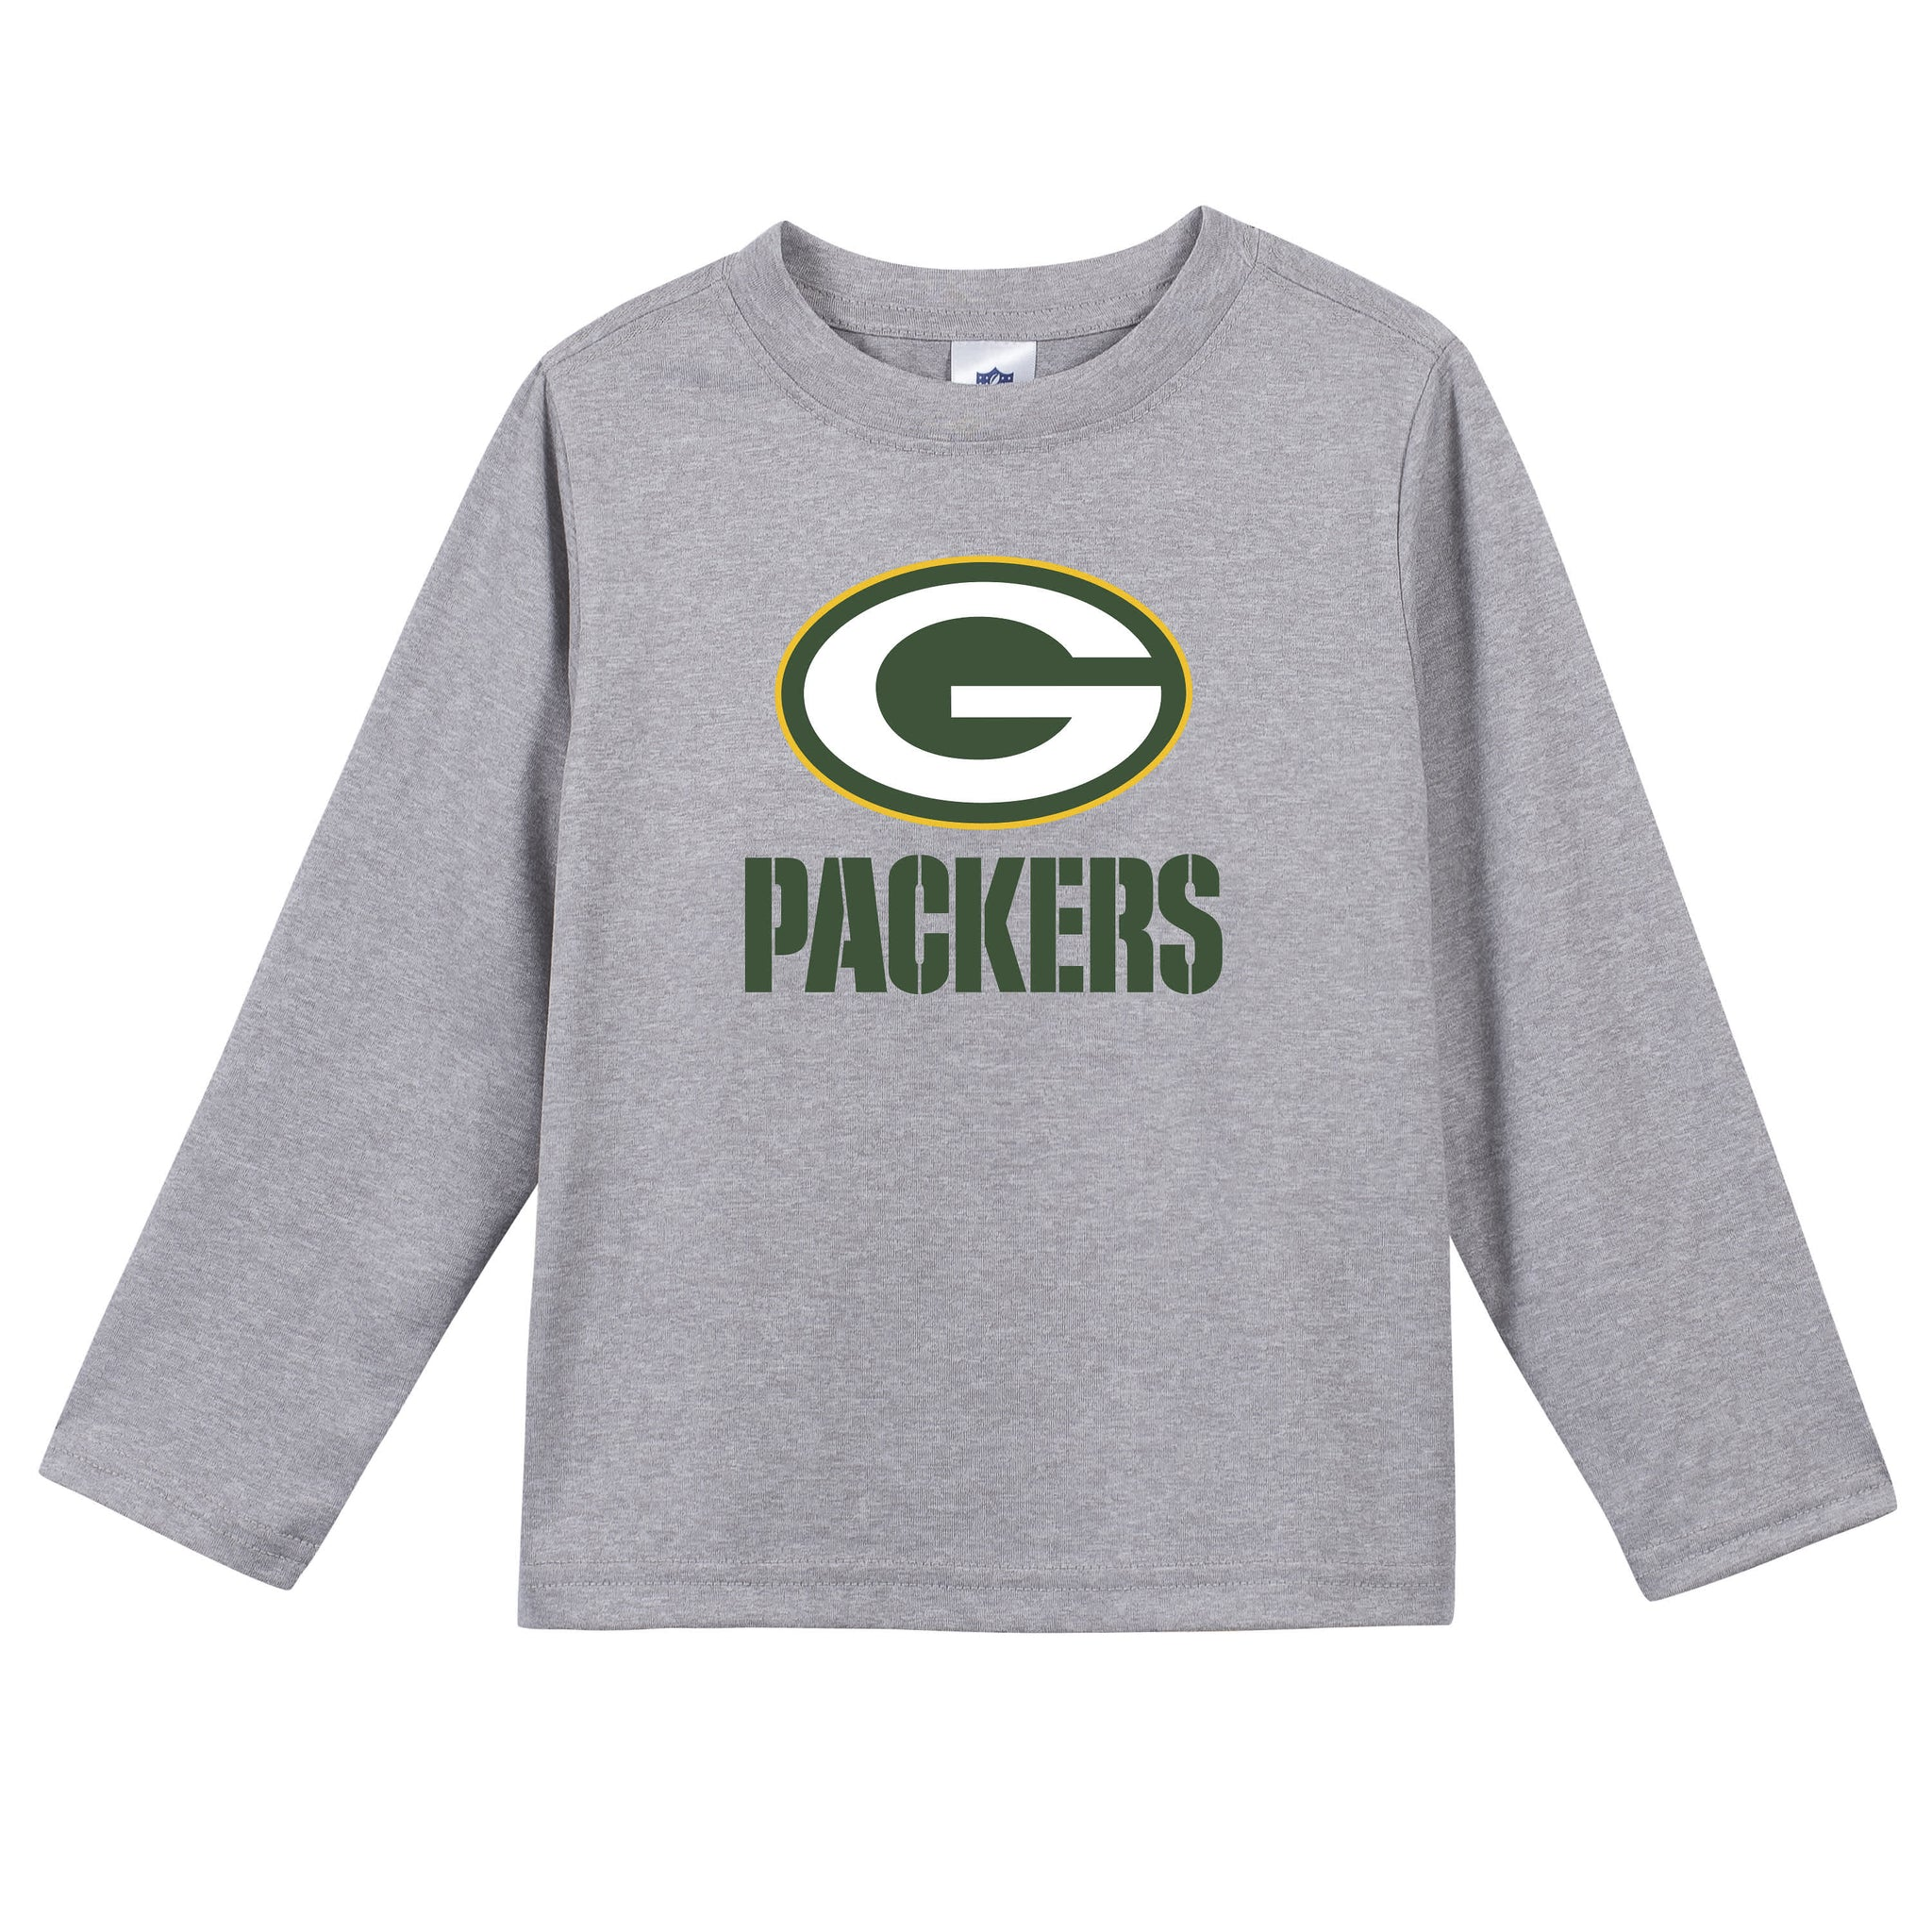 Green Bay Packers Toddler Boys Long Sleeve Tee Shirt-Gerber Childrenswear